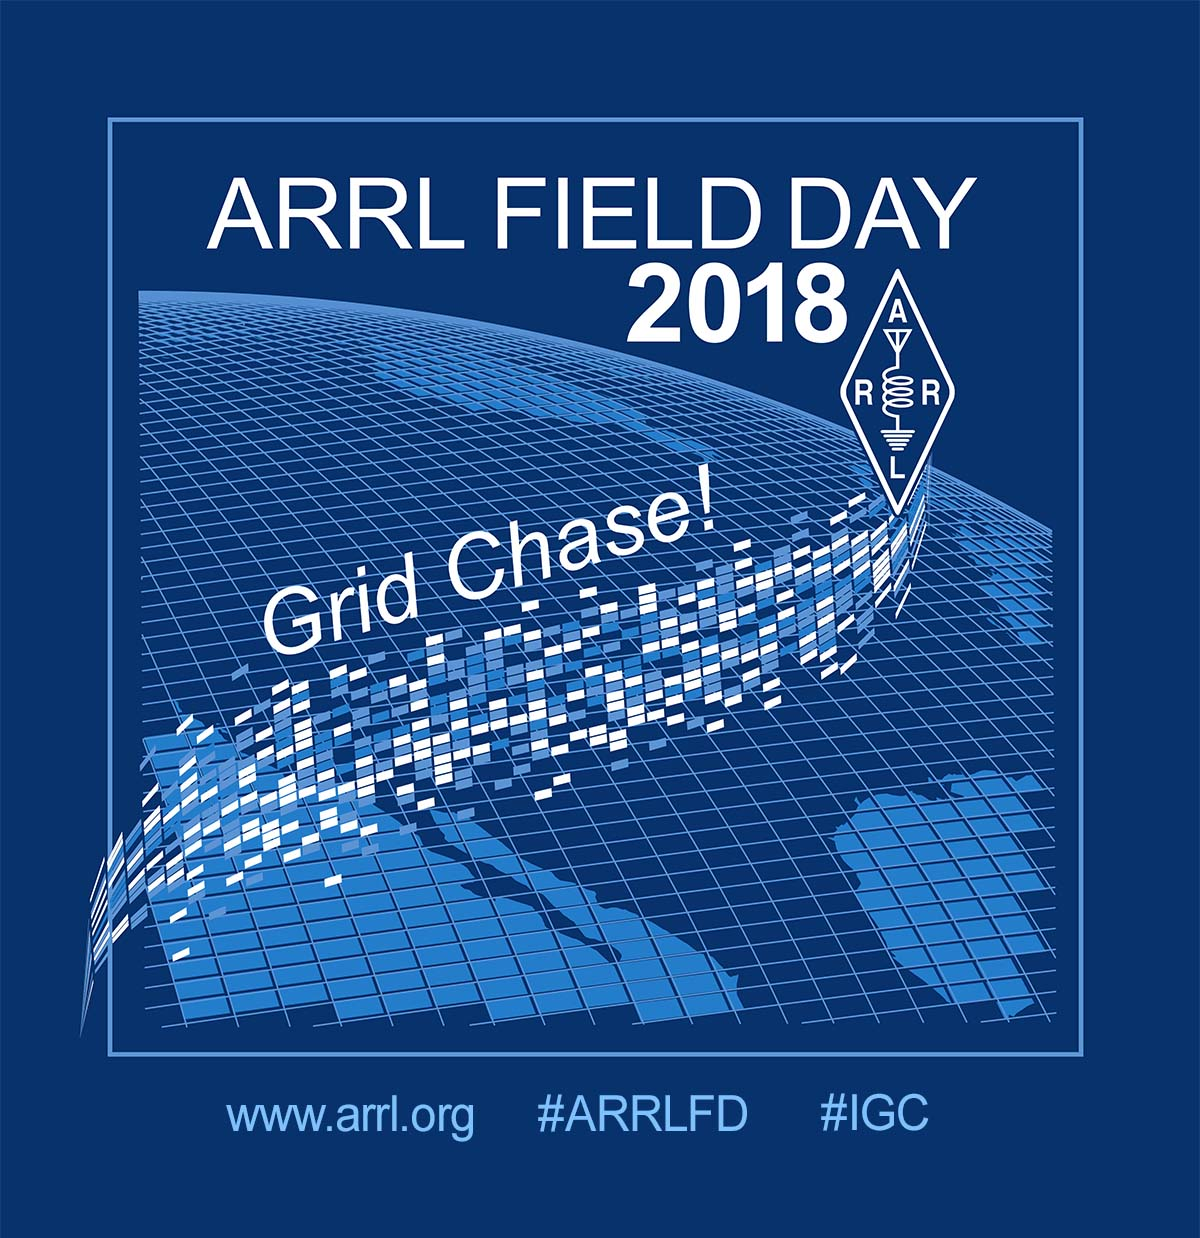 2018 20arrl 20field 20day 20logo 20download